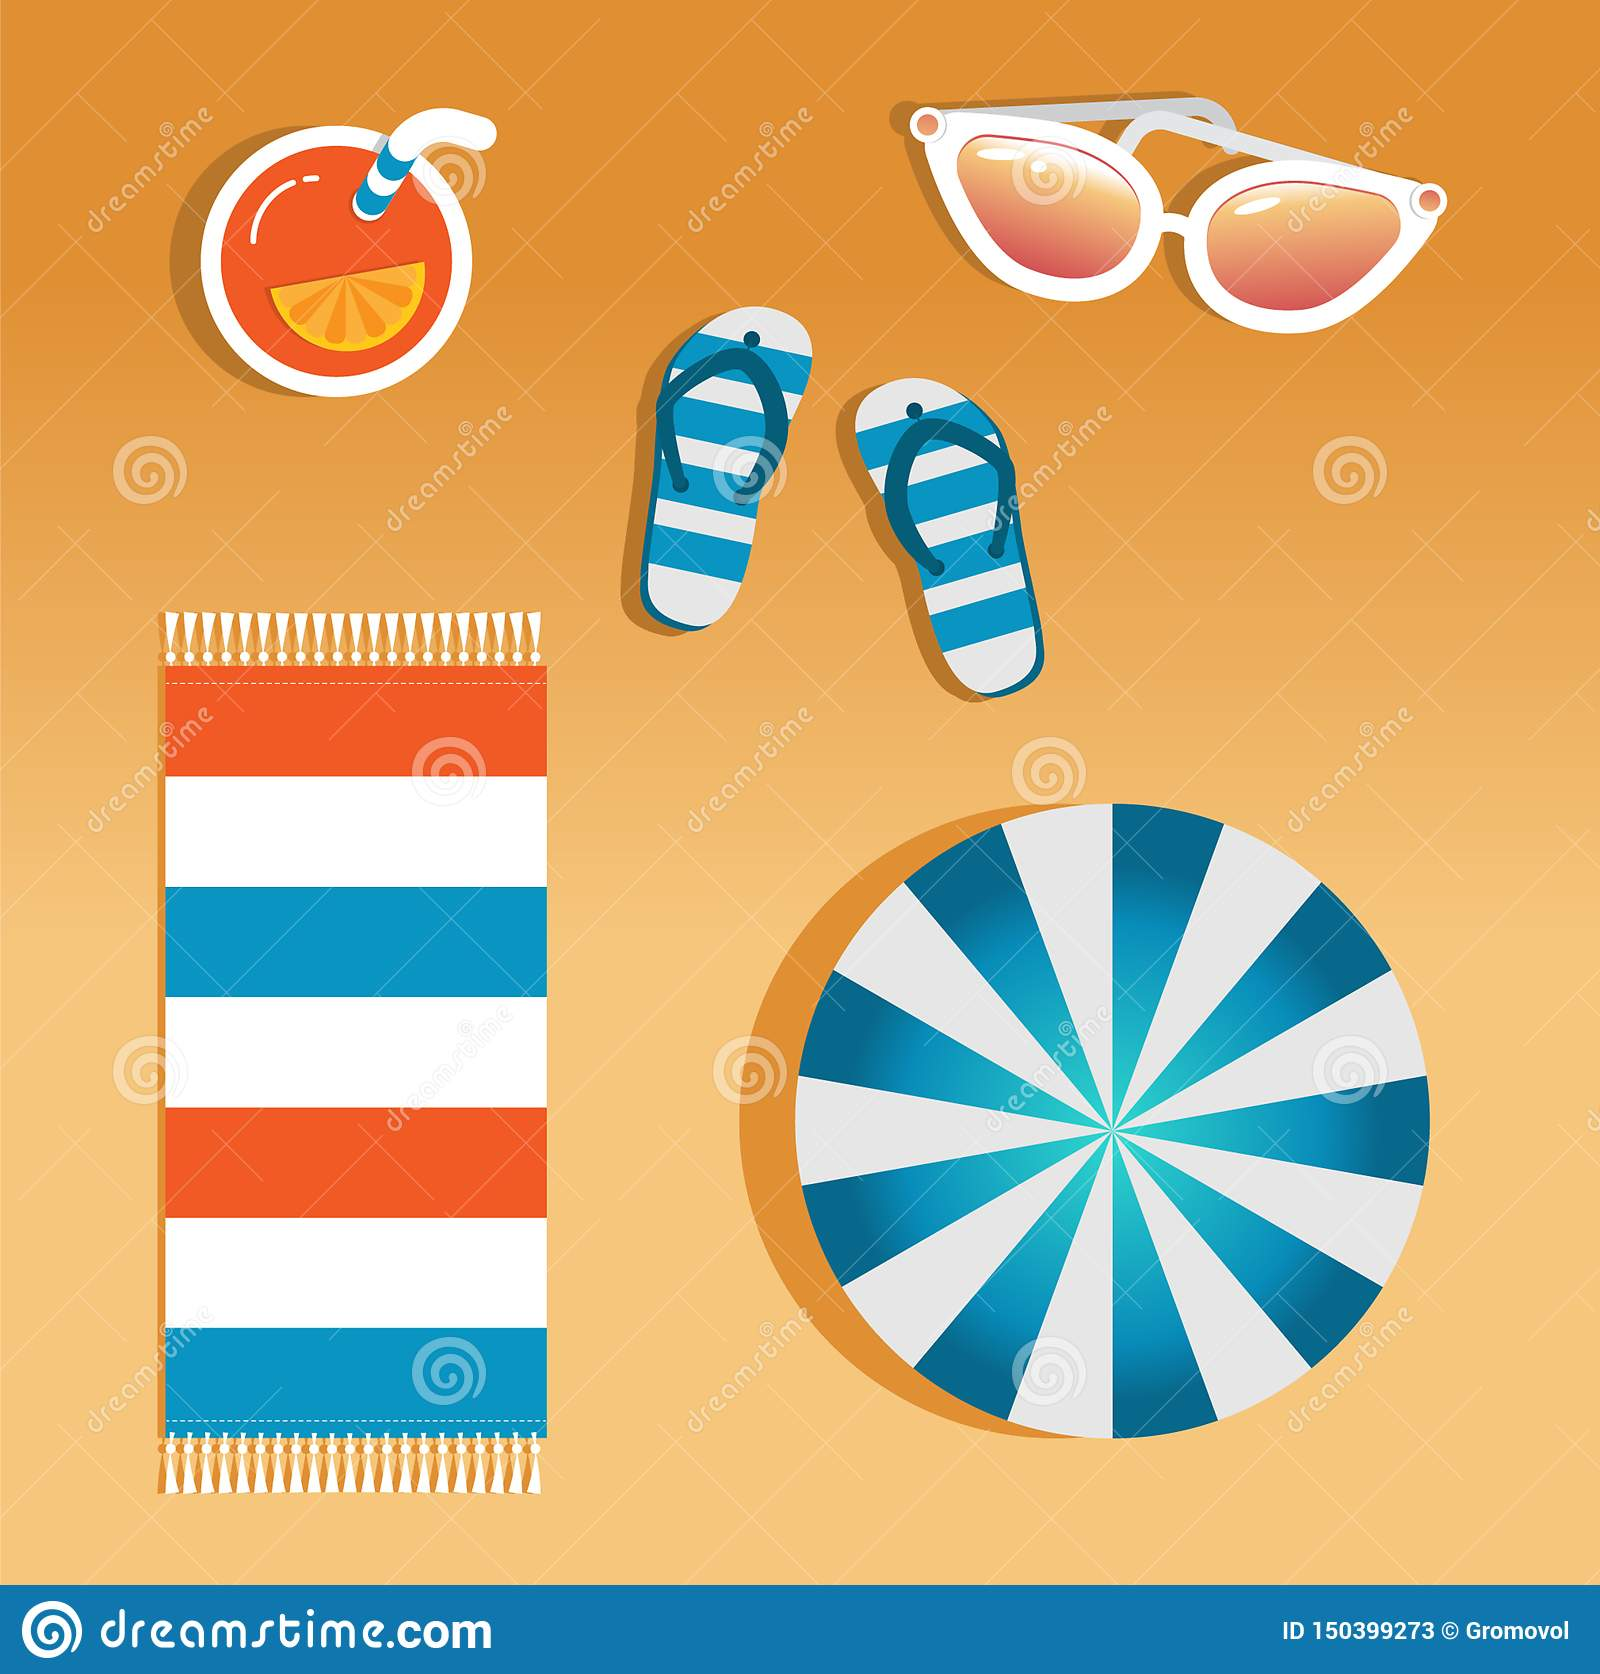 Vector image of beach accessories